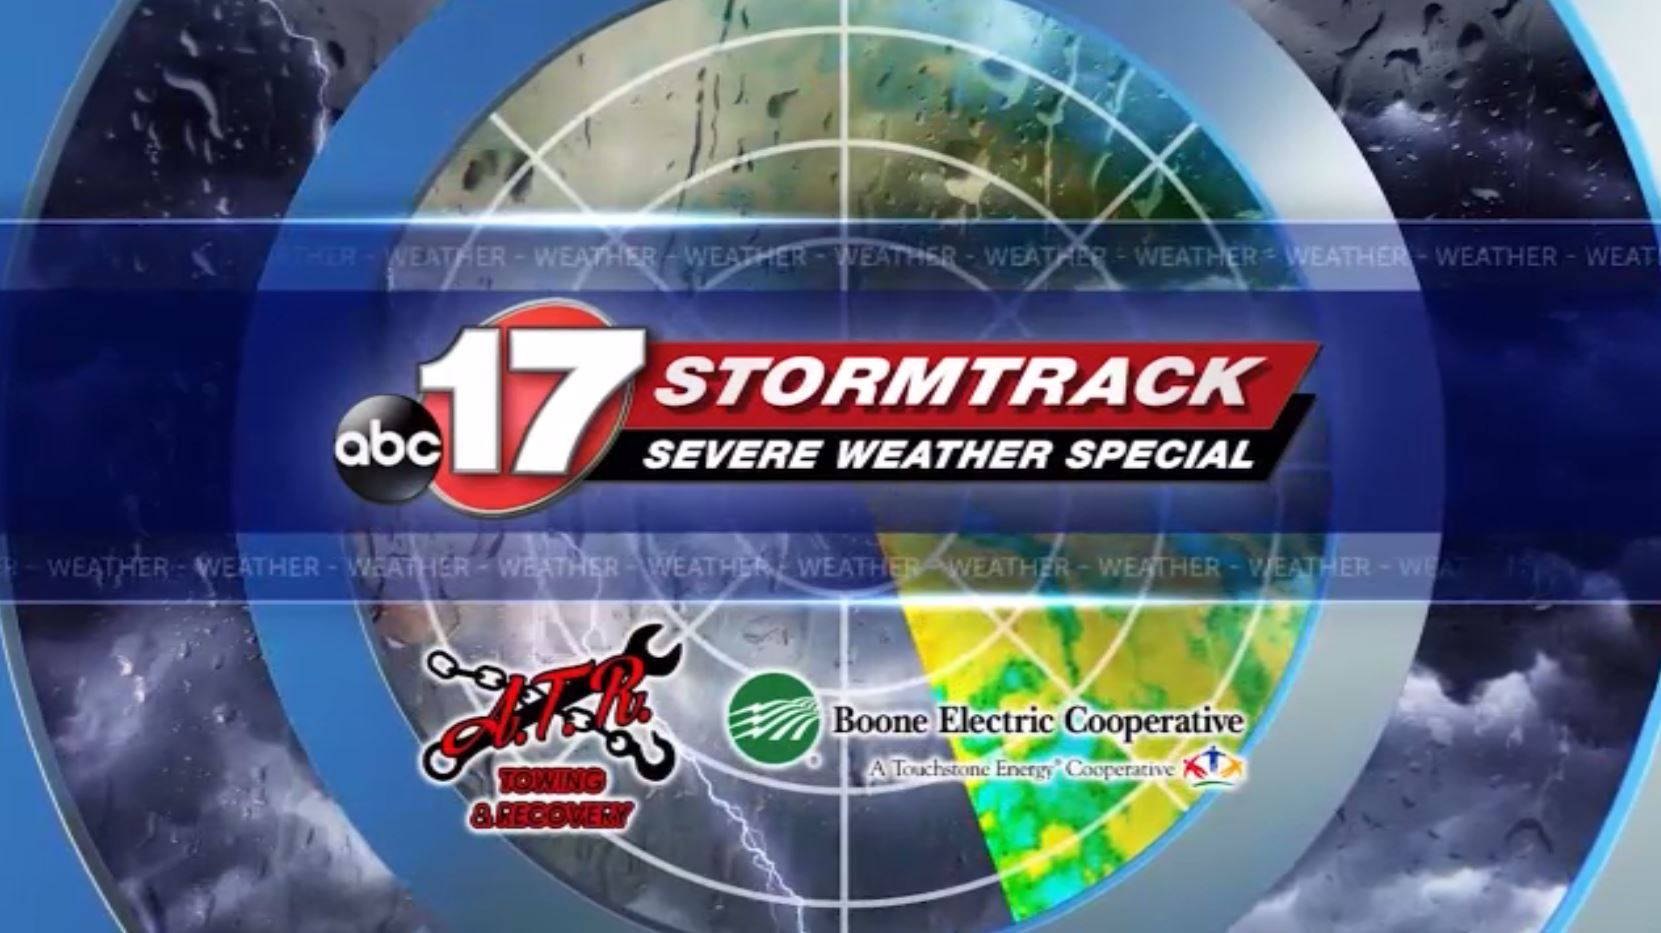 Stormtrack Severe Weather Special